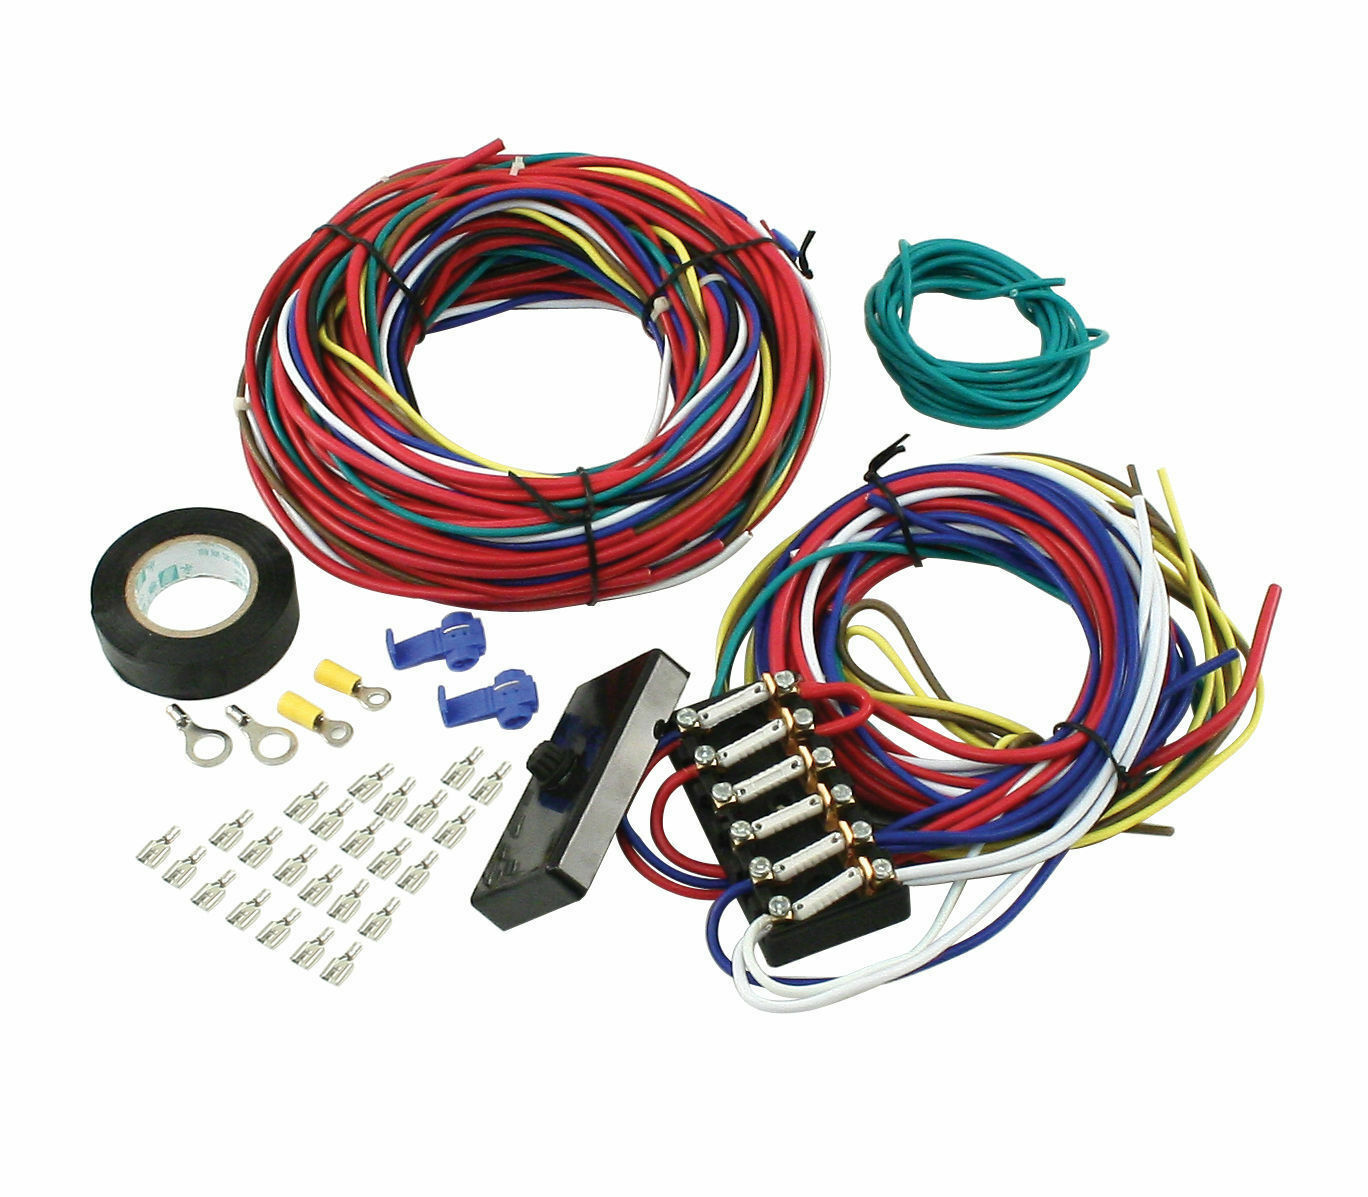 DUNE BUGGY wiring harness, sand rail VW trike, VW kit car wiring loom hotrod  1 of 3Only 4 available See More